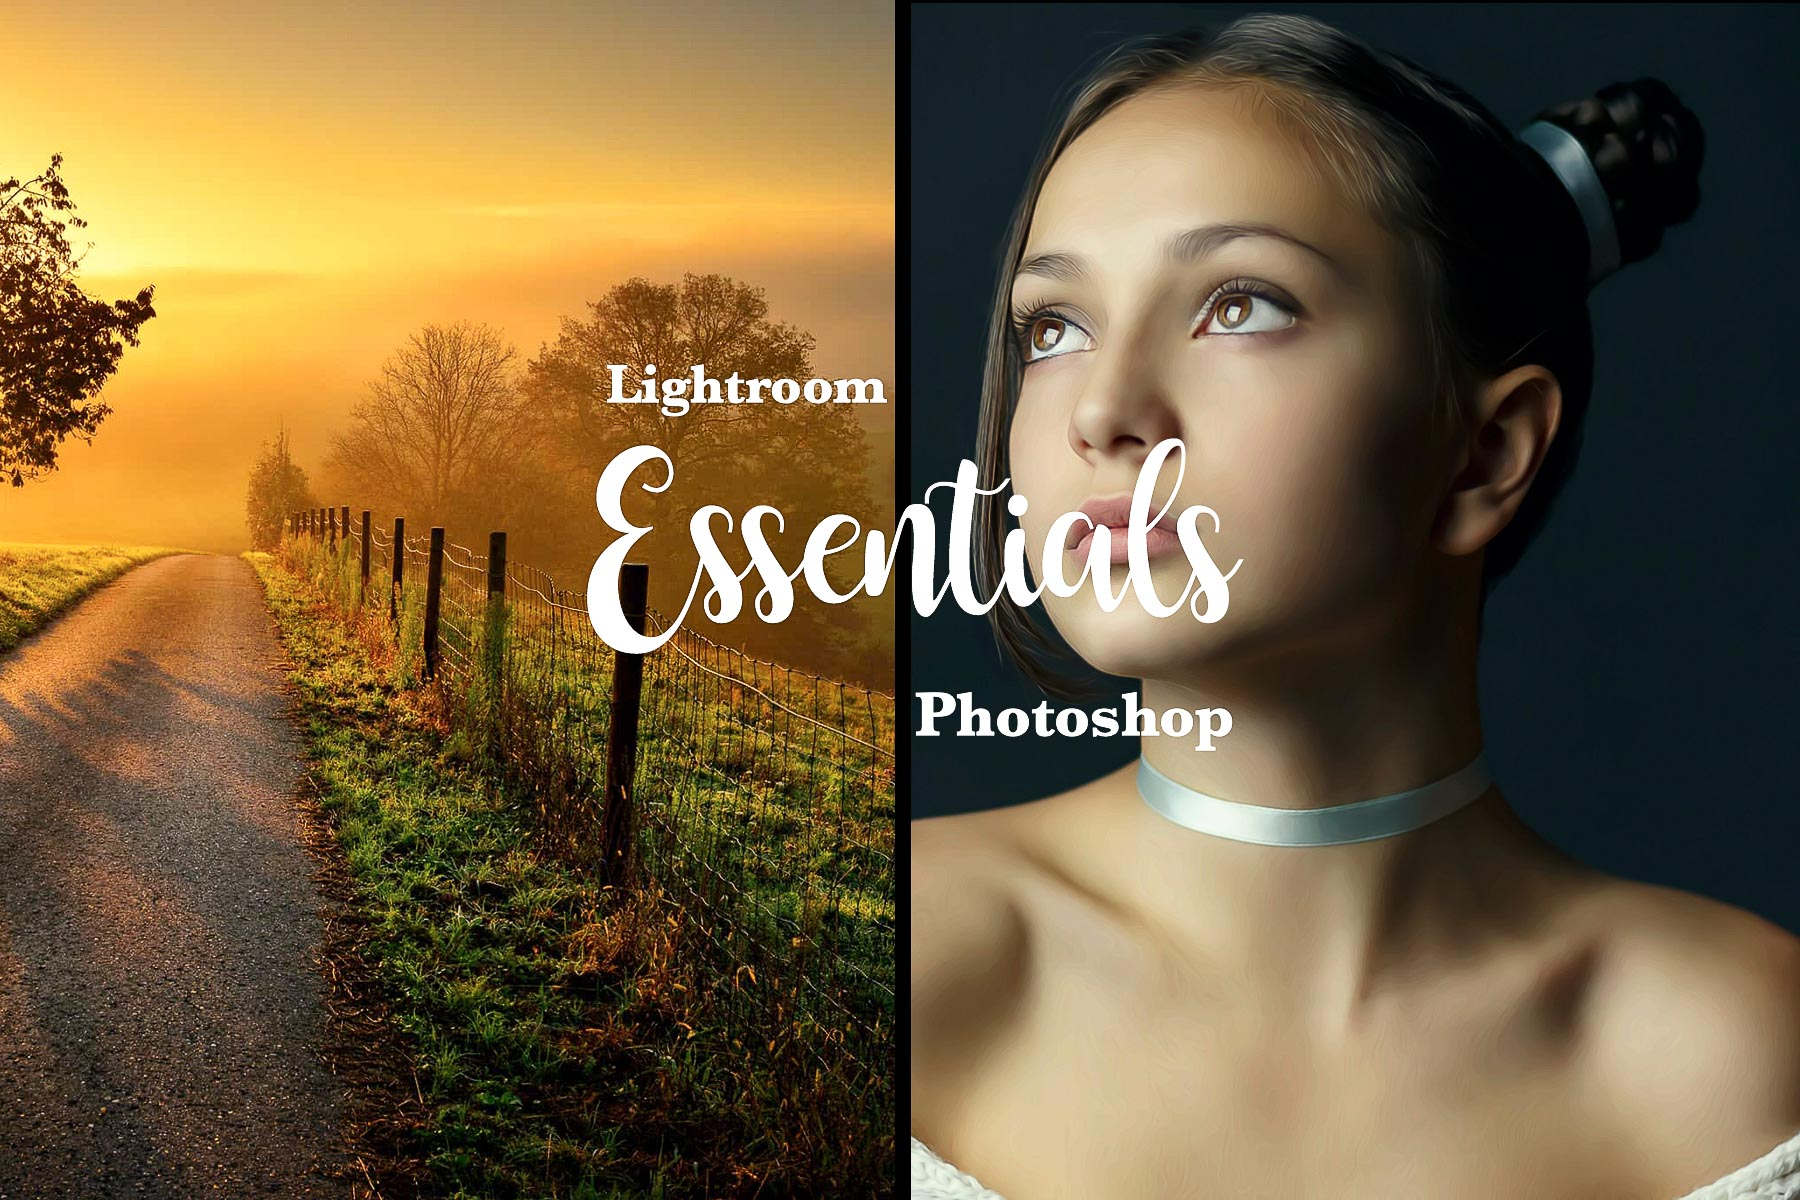 Photoshop Camera RAW & Lightroom Essential Presets - XMP presets from PixaFOTO.com